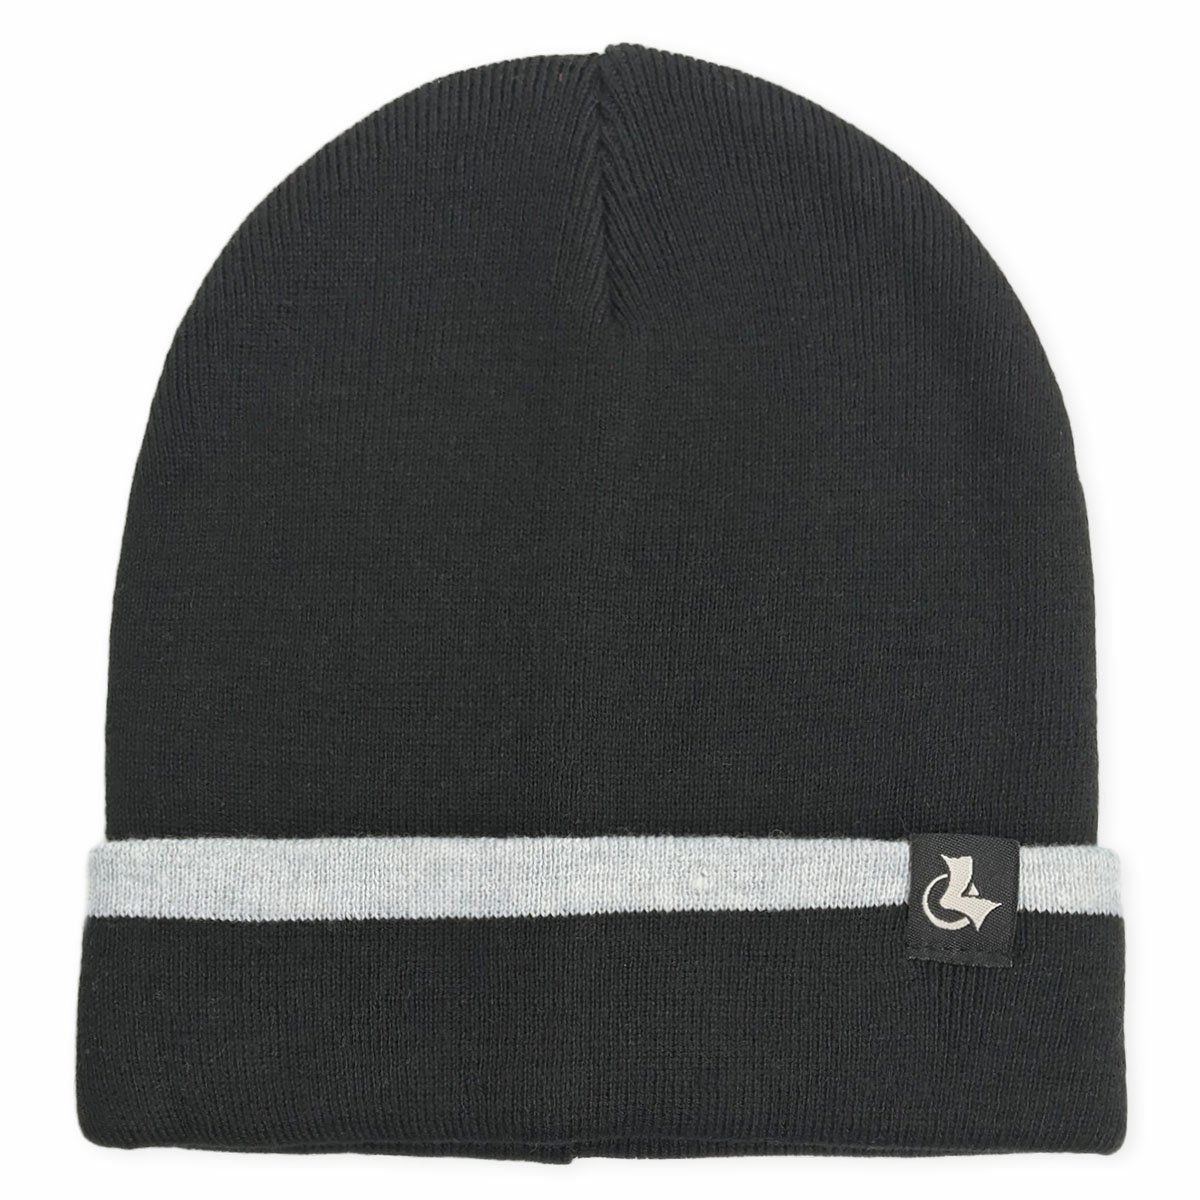 d2e5e3448ff3e8 LETHMIK Merino Wool Cuff Beanie, Warm Winter Slouchy Hat Knit Skull Cap for  Men & Women Black at Amazon Men's Clothing store: